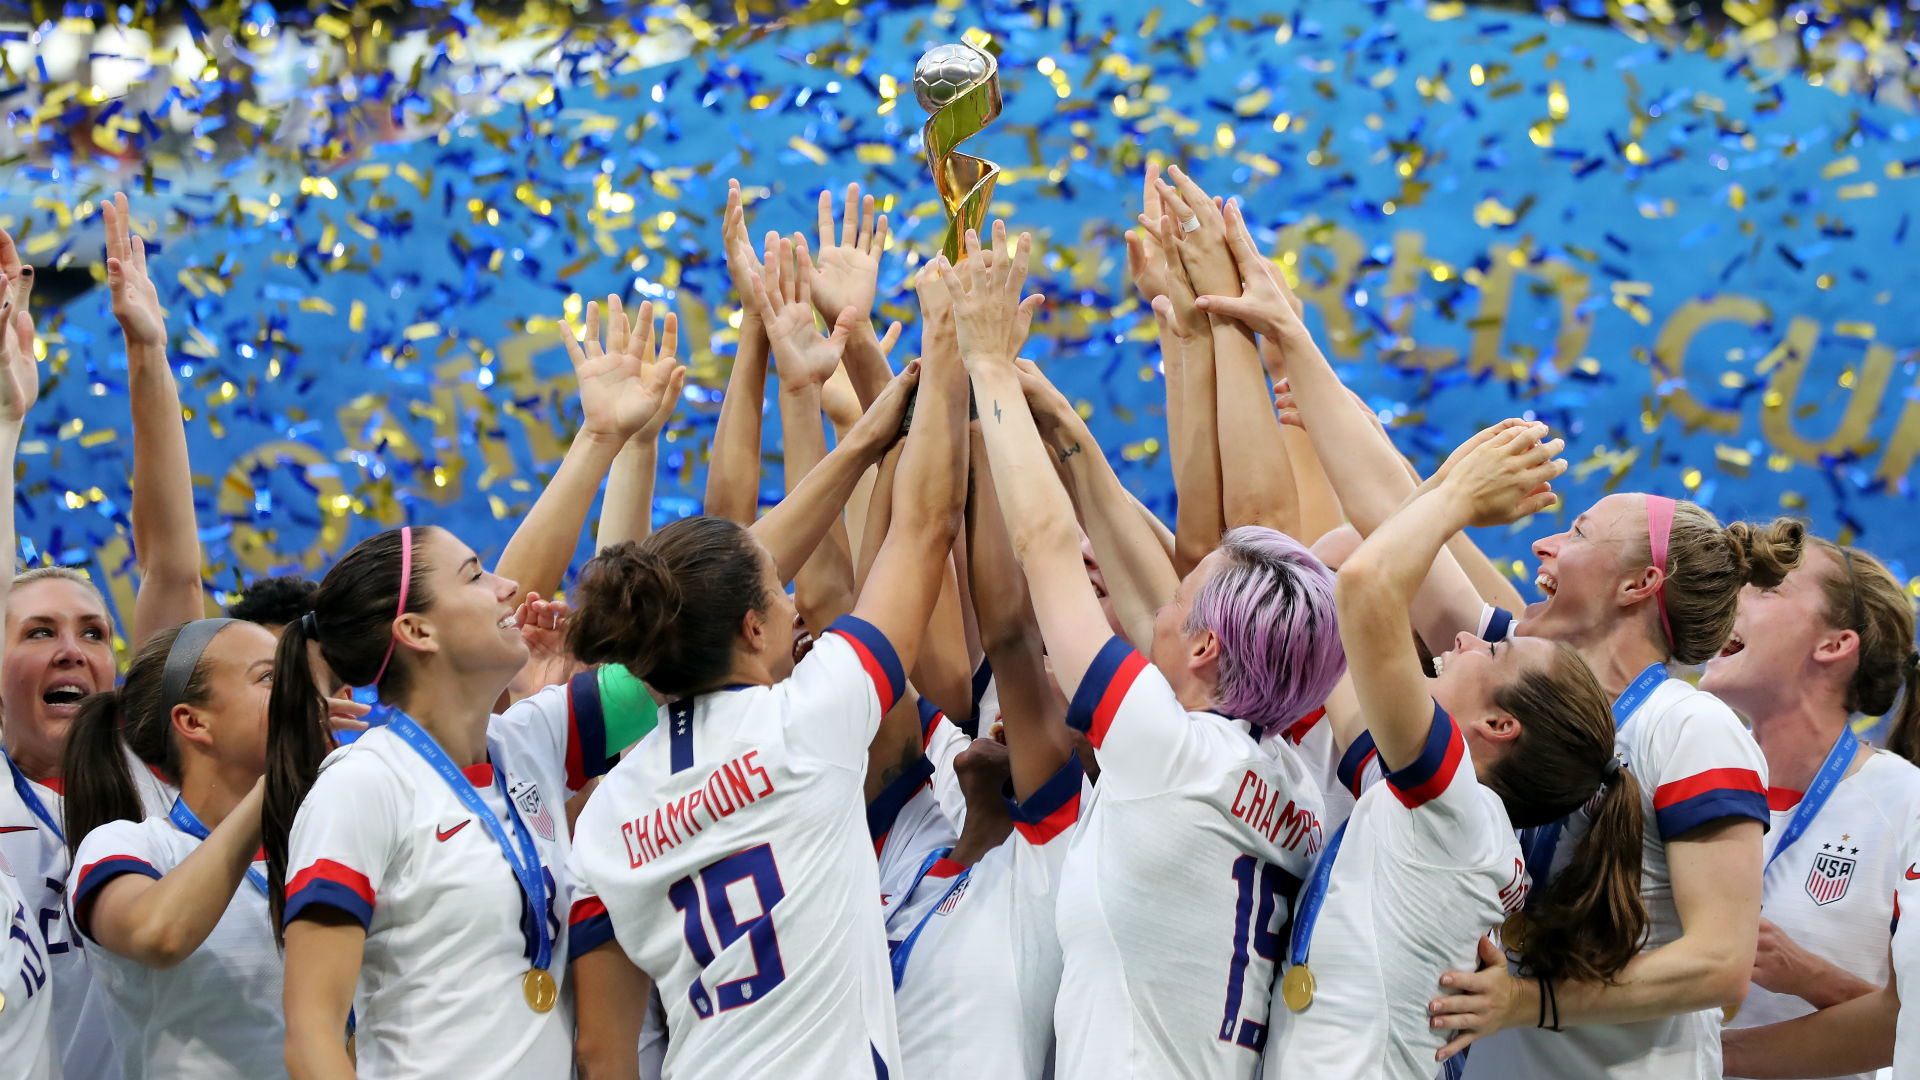 Women's World Cup 2019: Teams, fixtures, dates & everything